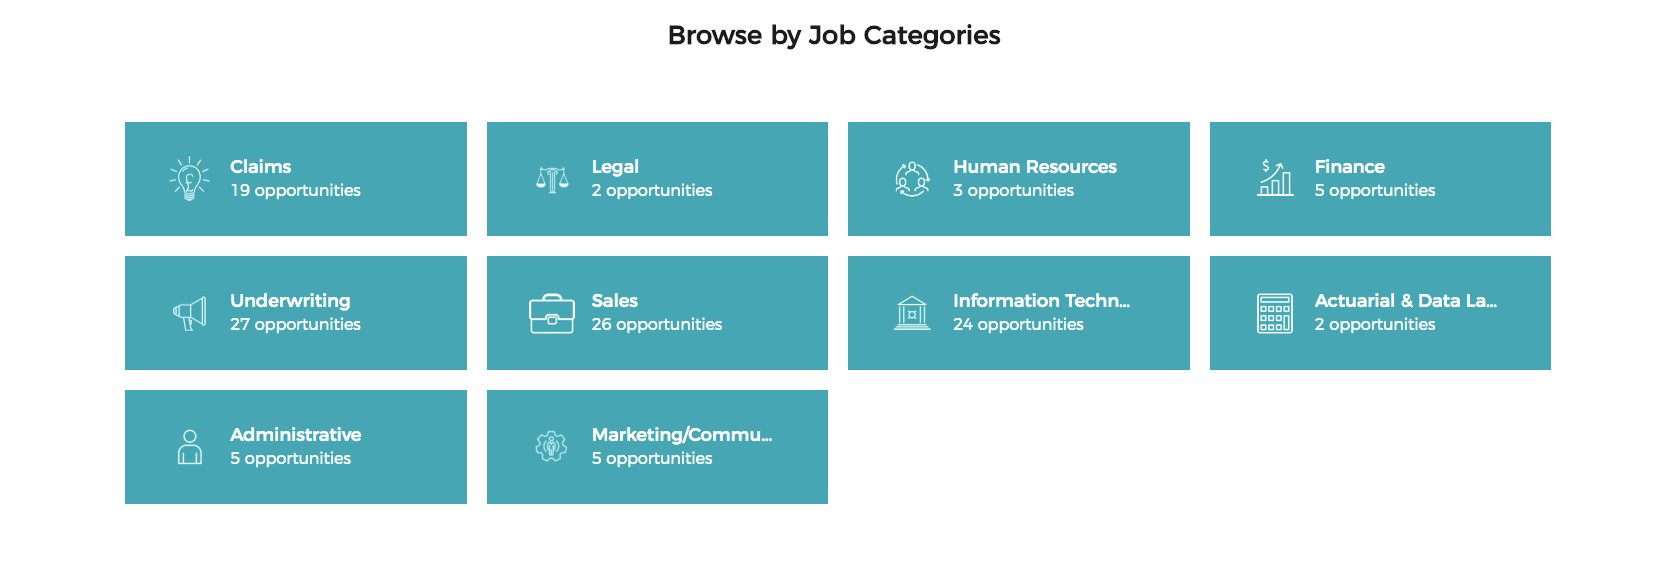 Browse by job category on Intact's career site with Phenom People